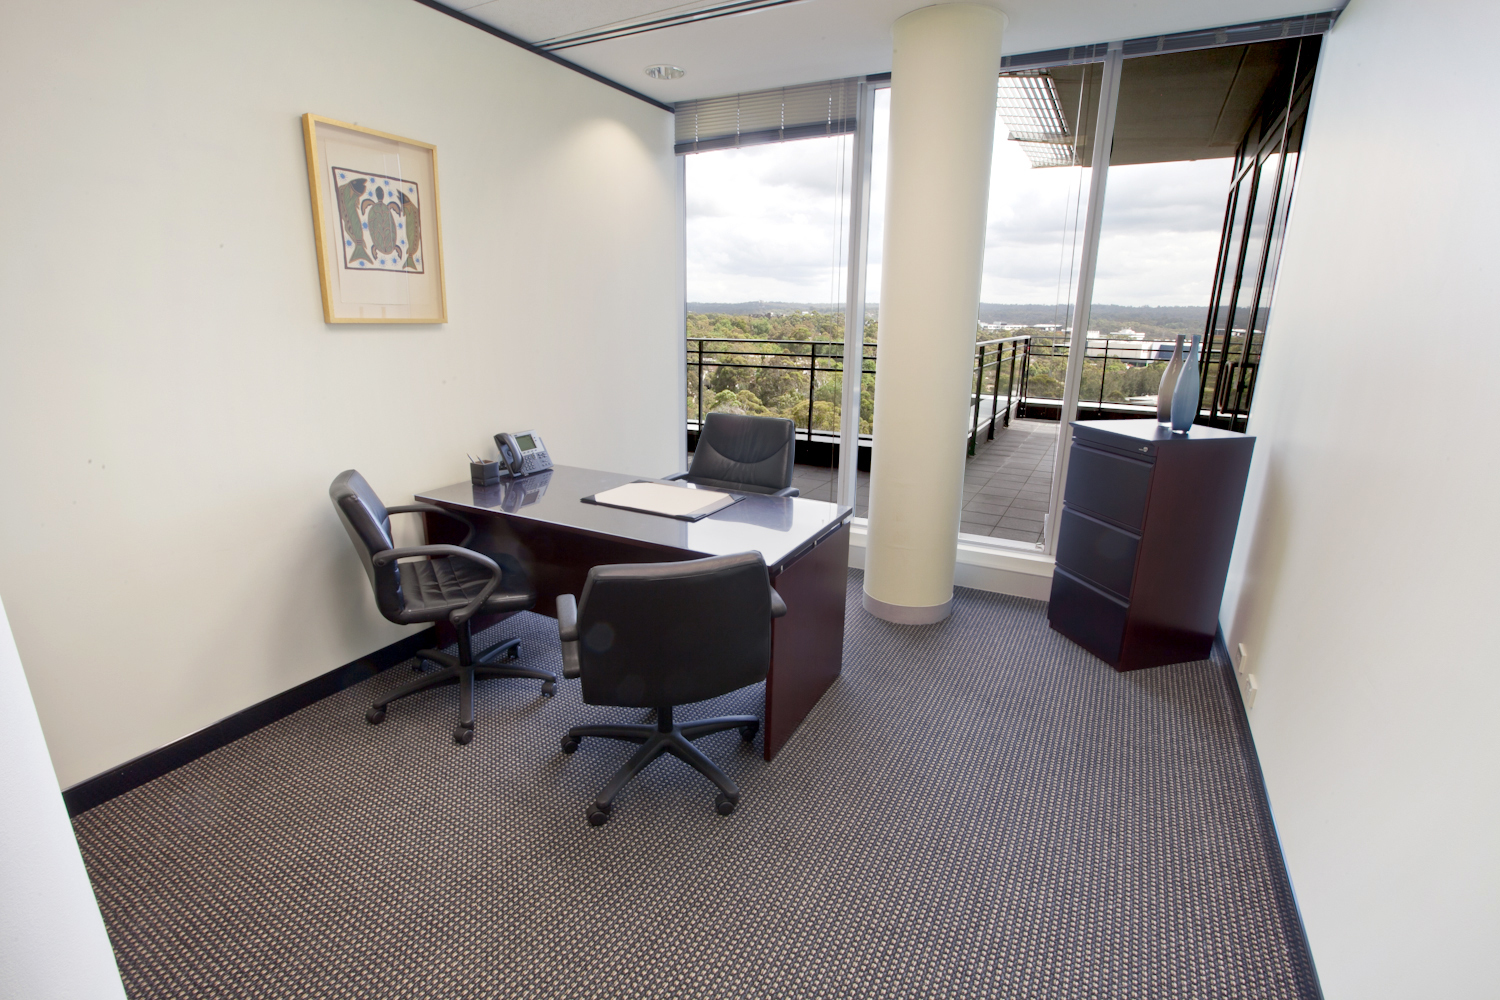 2-PERSON OFFICES LOCATED IN MACQUARIE PARK